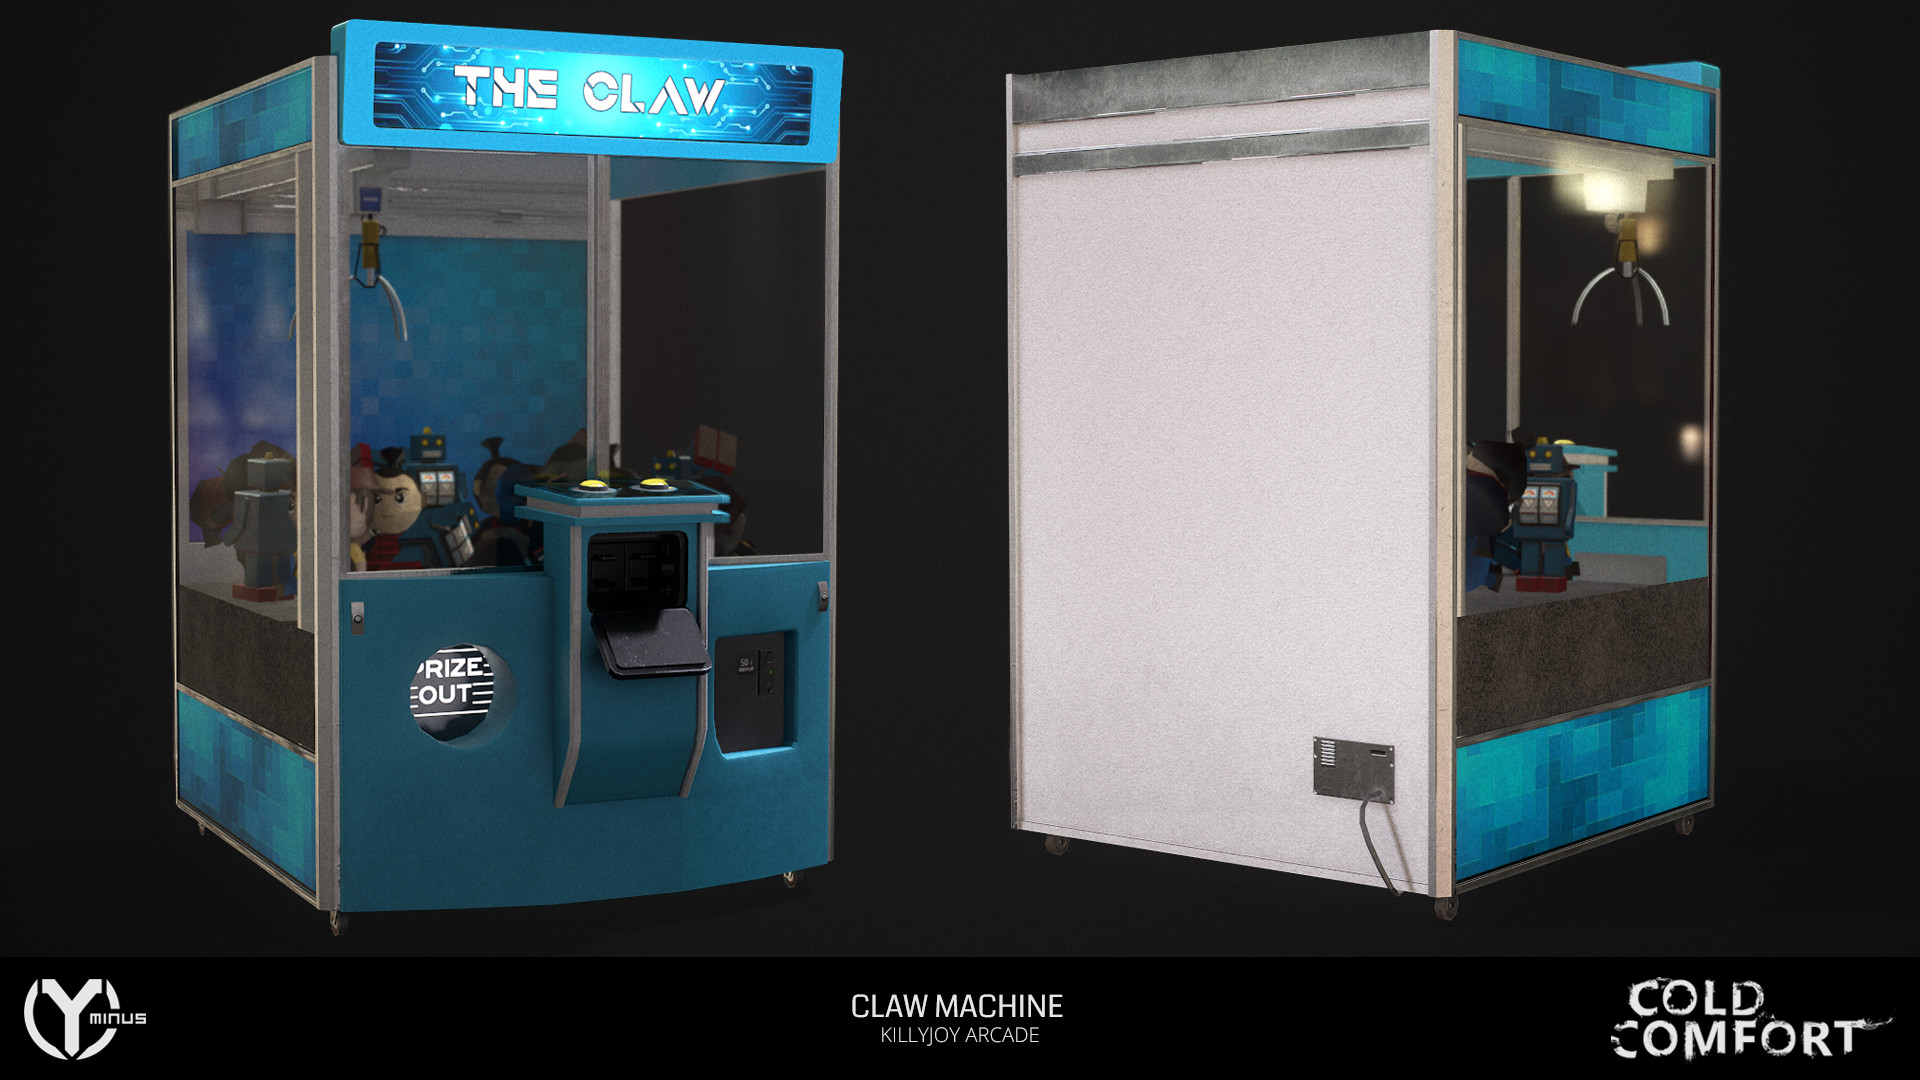 Martin giles claw render 001